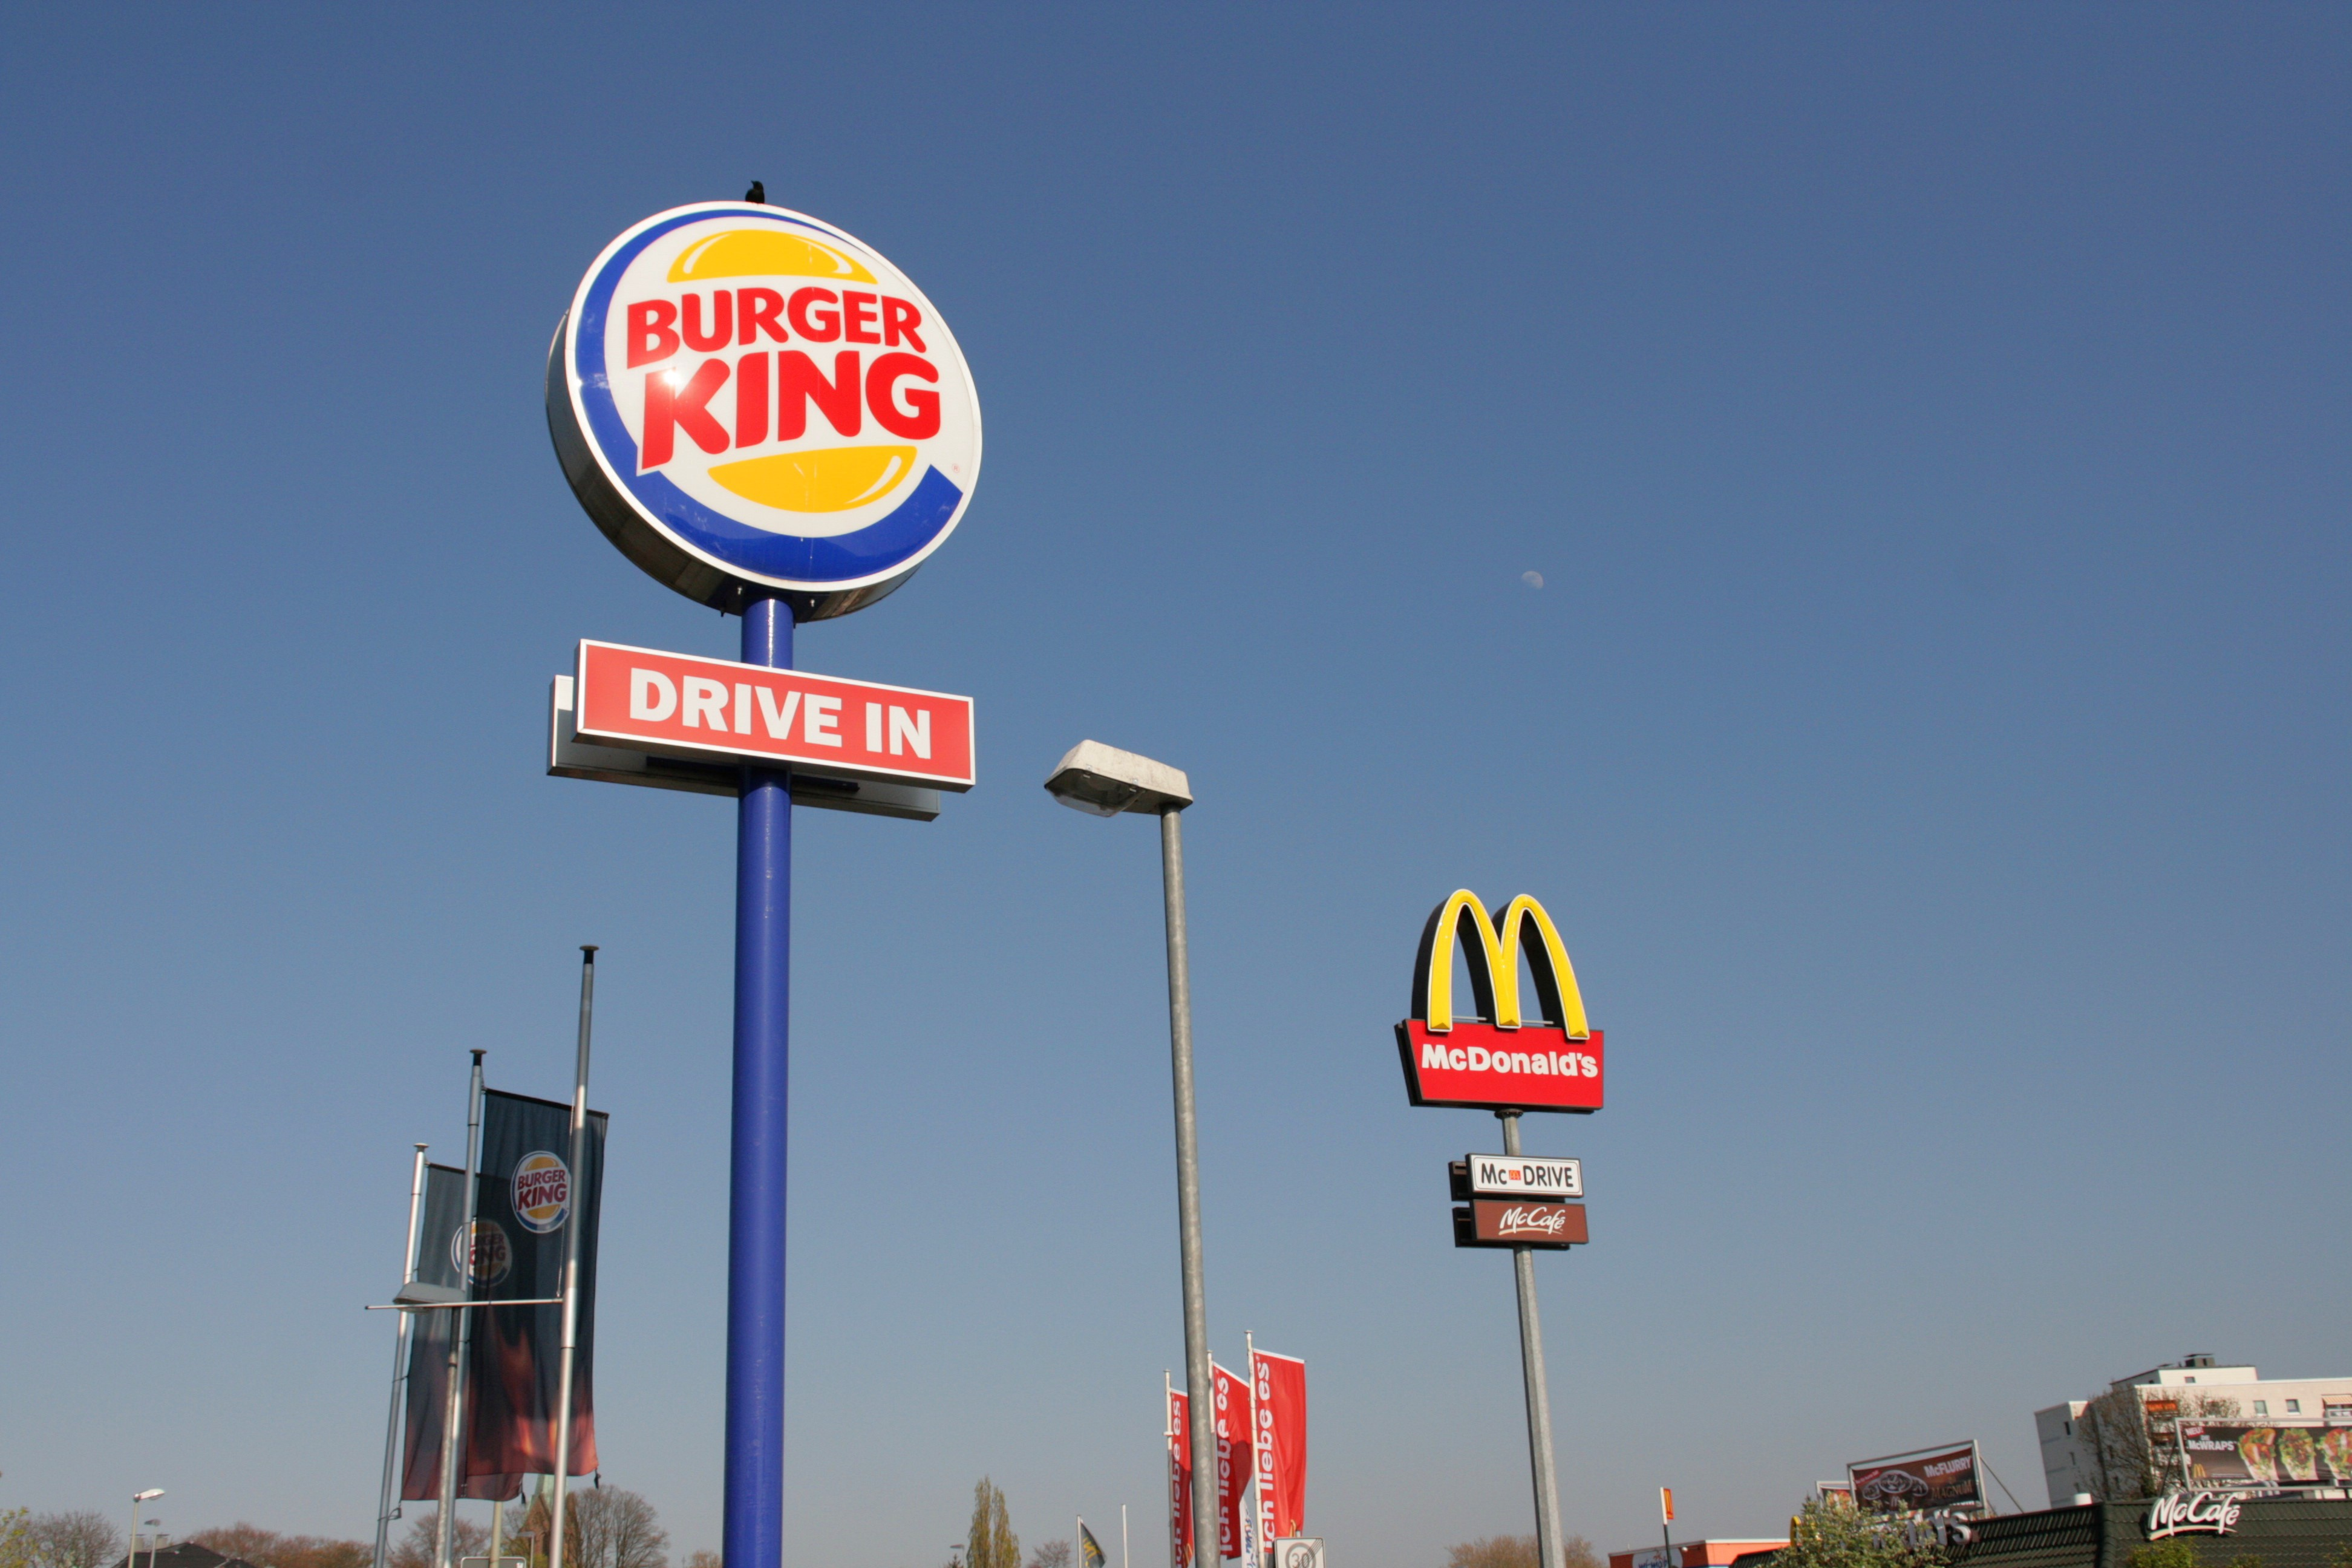 Signs for Burger King and McDonald's